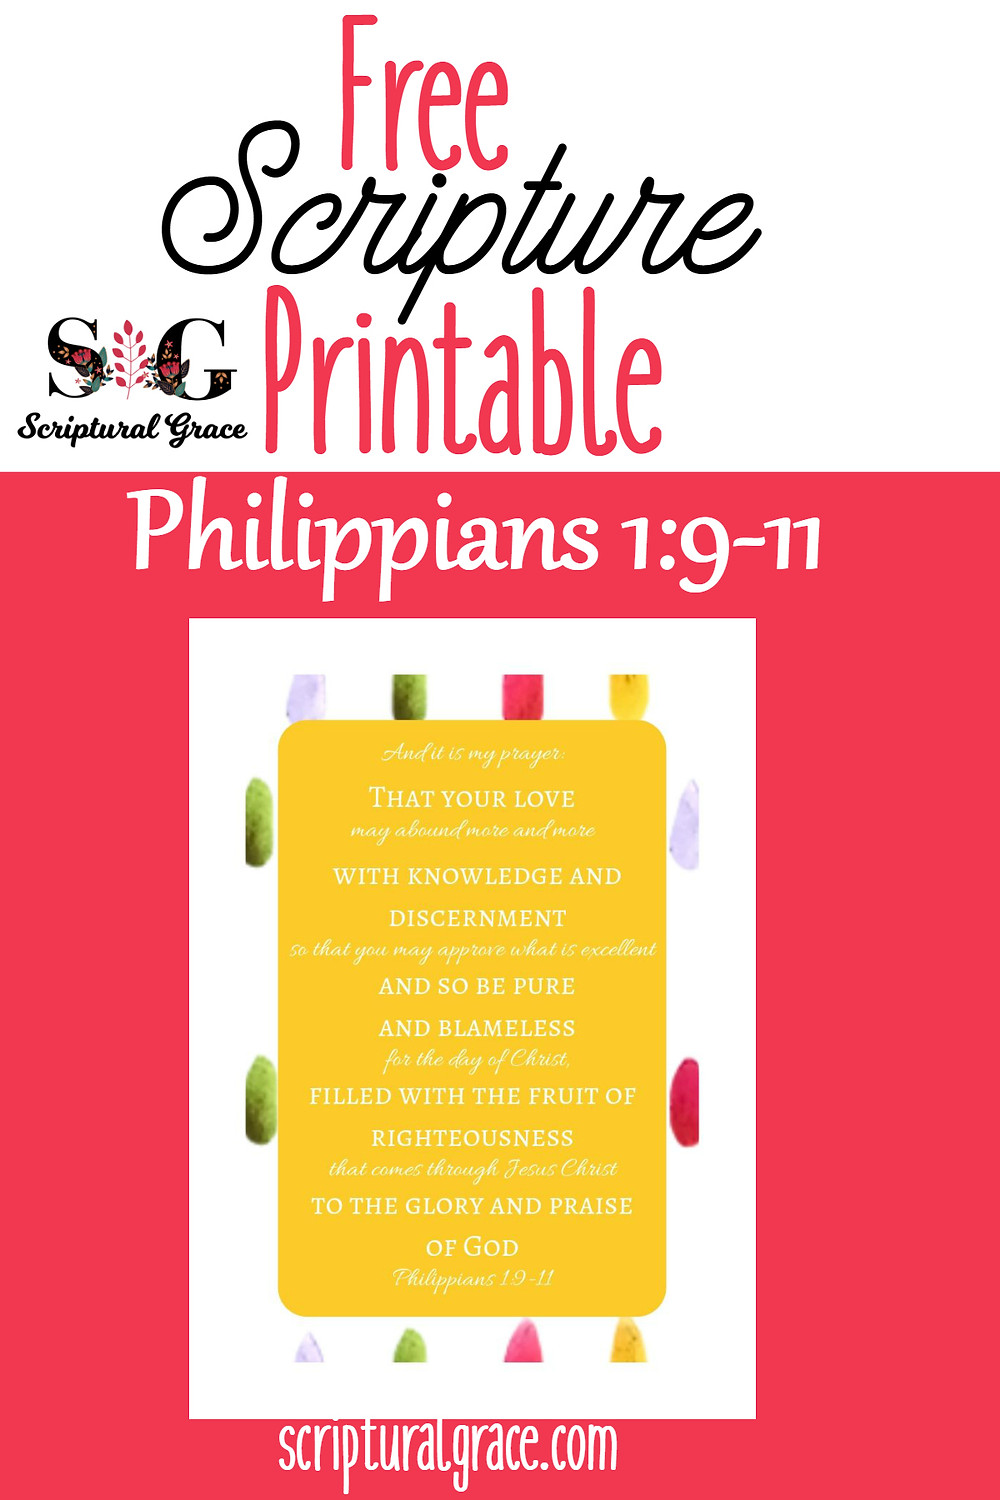 Afun bright colored free printable scripture poster and cards